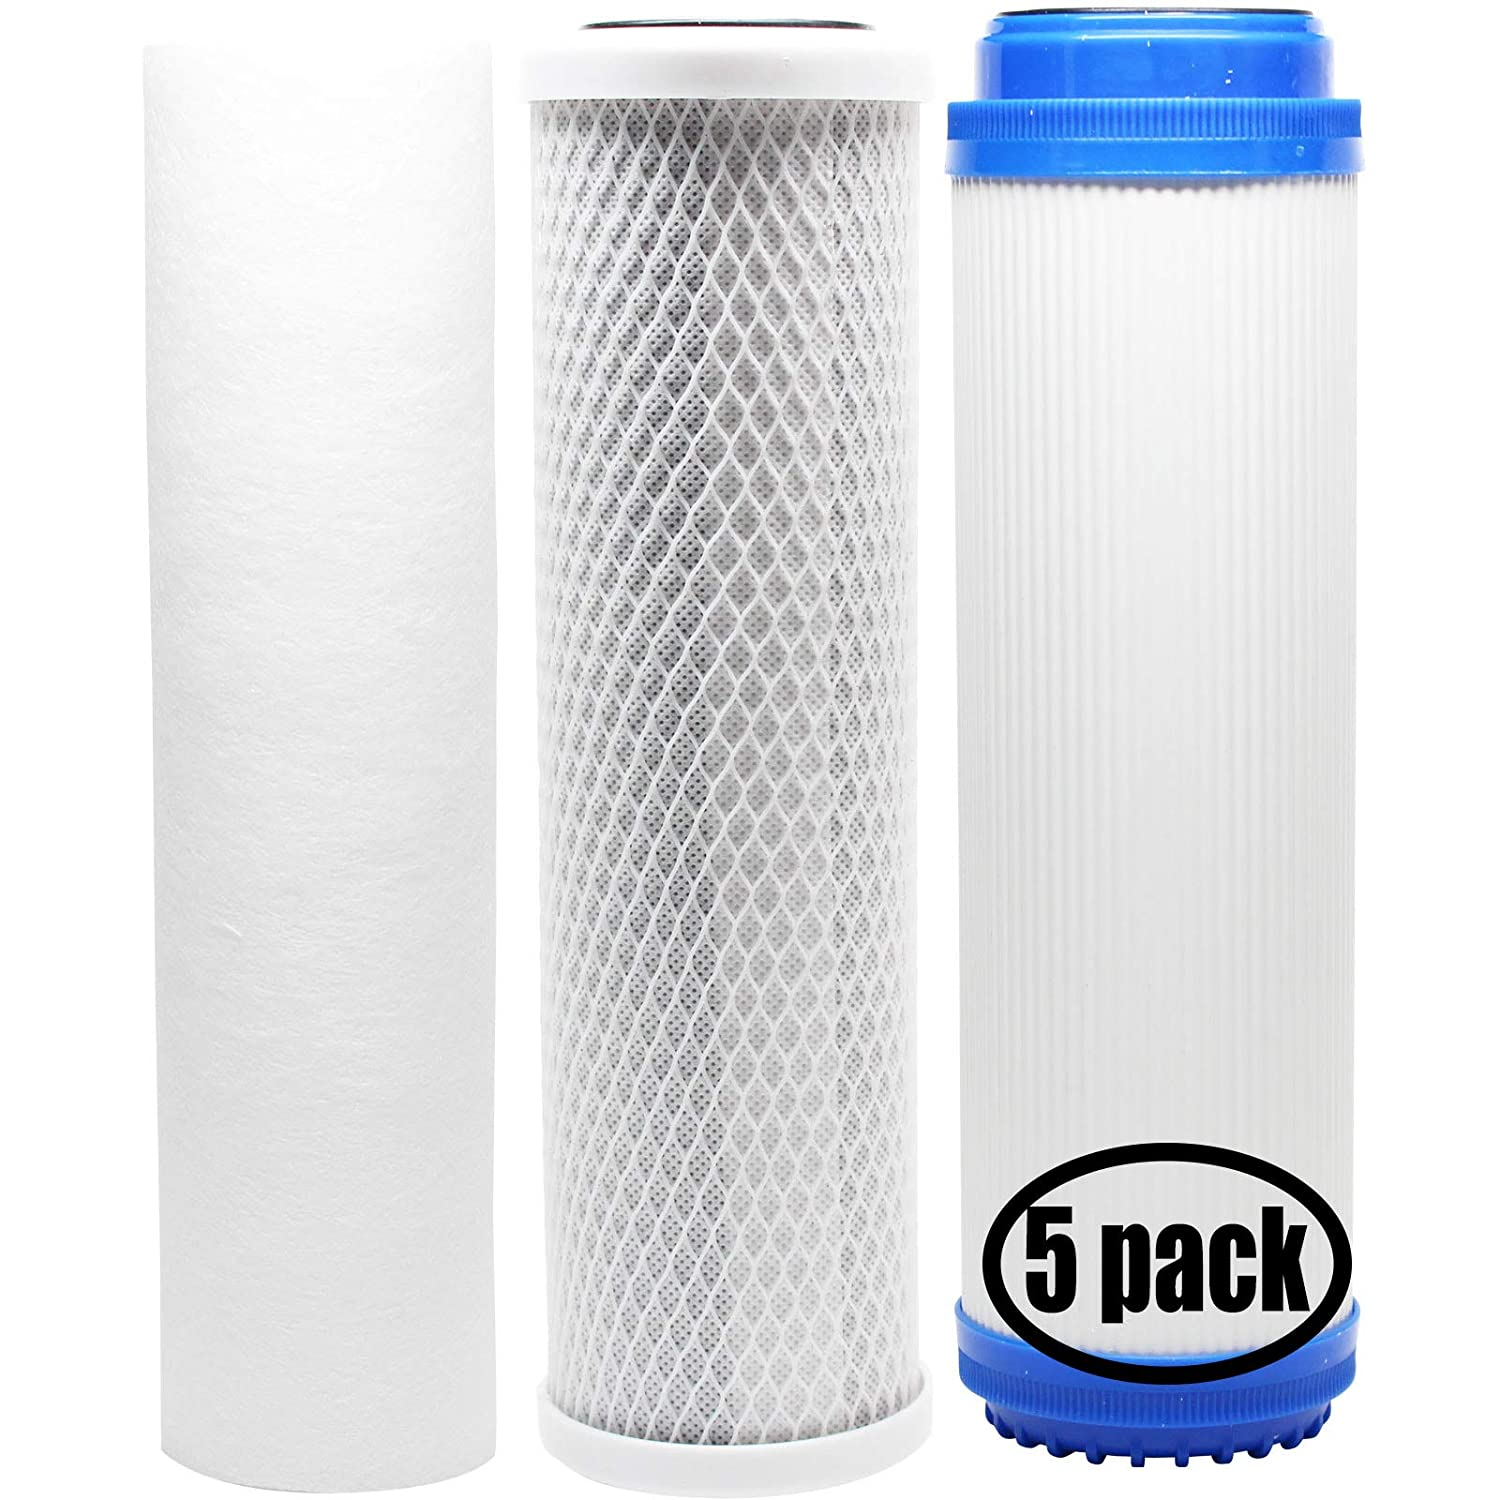 Sediment Filter & GAC Filter   inkl 5er Pack Ersatz Filter Kit für Pentek 158120 RO System   Denali Pure Marke Carbon Block Filter